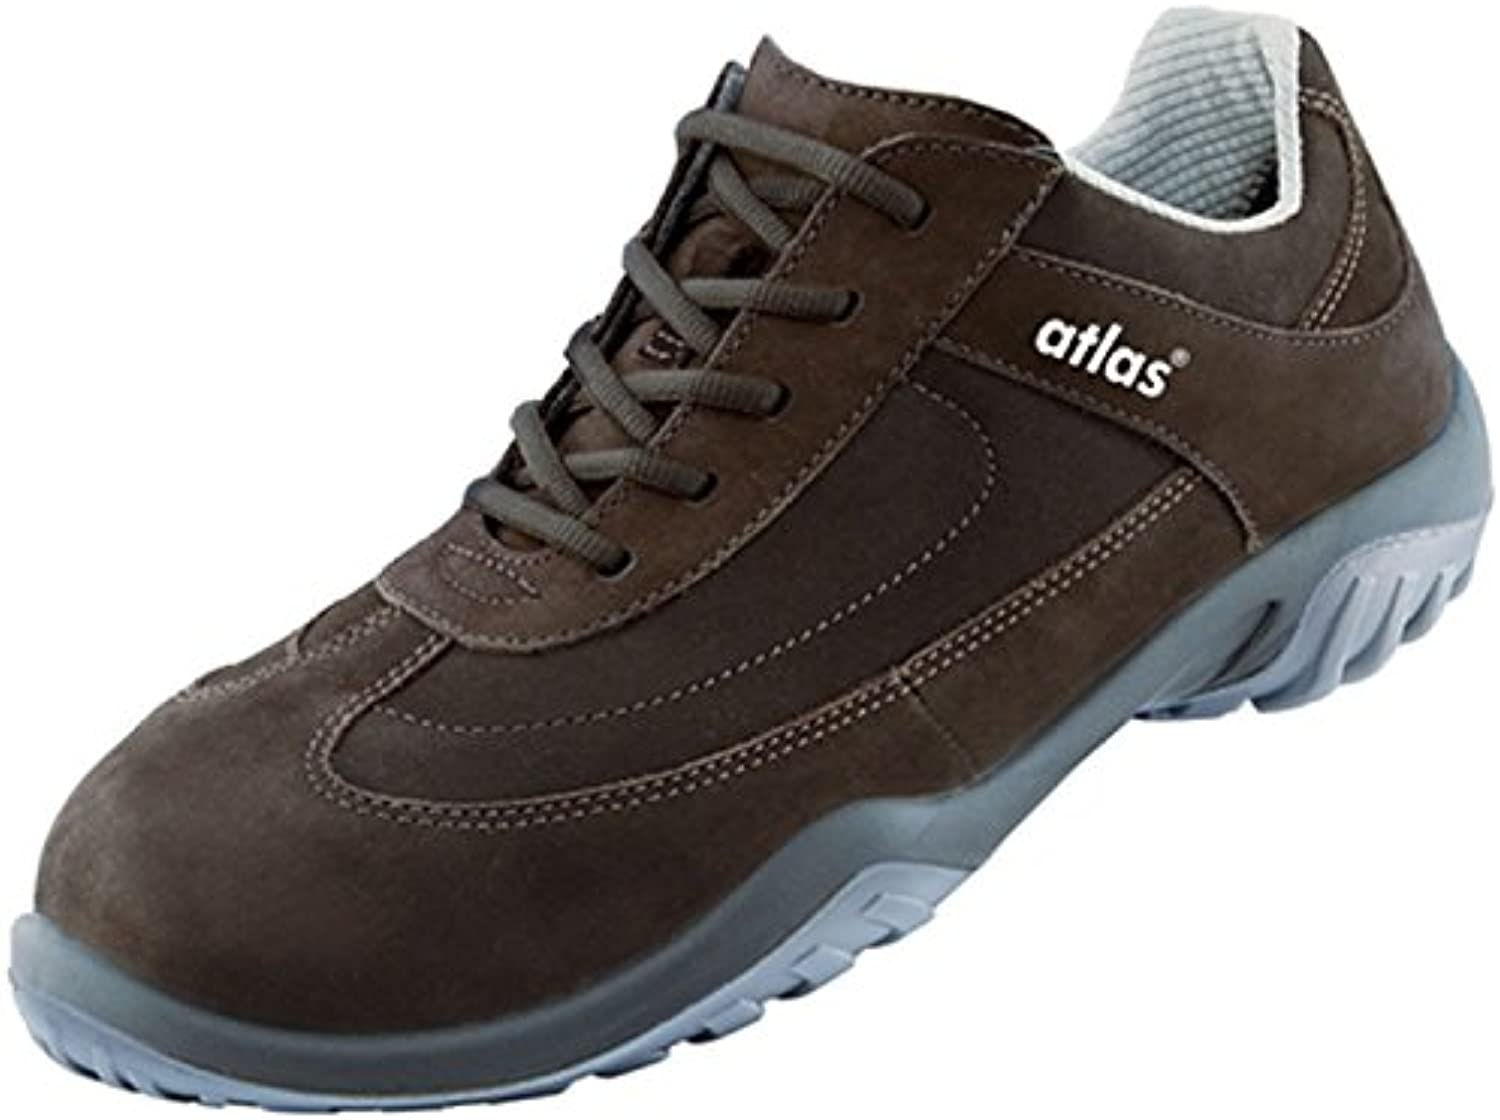 Atlas Sneaker SN 10 Brown ENISO 20345 S2